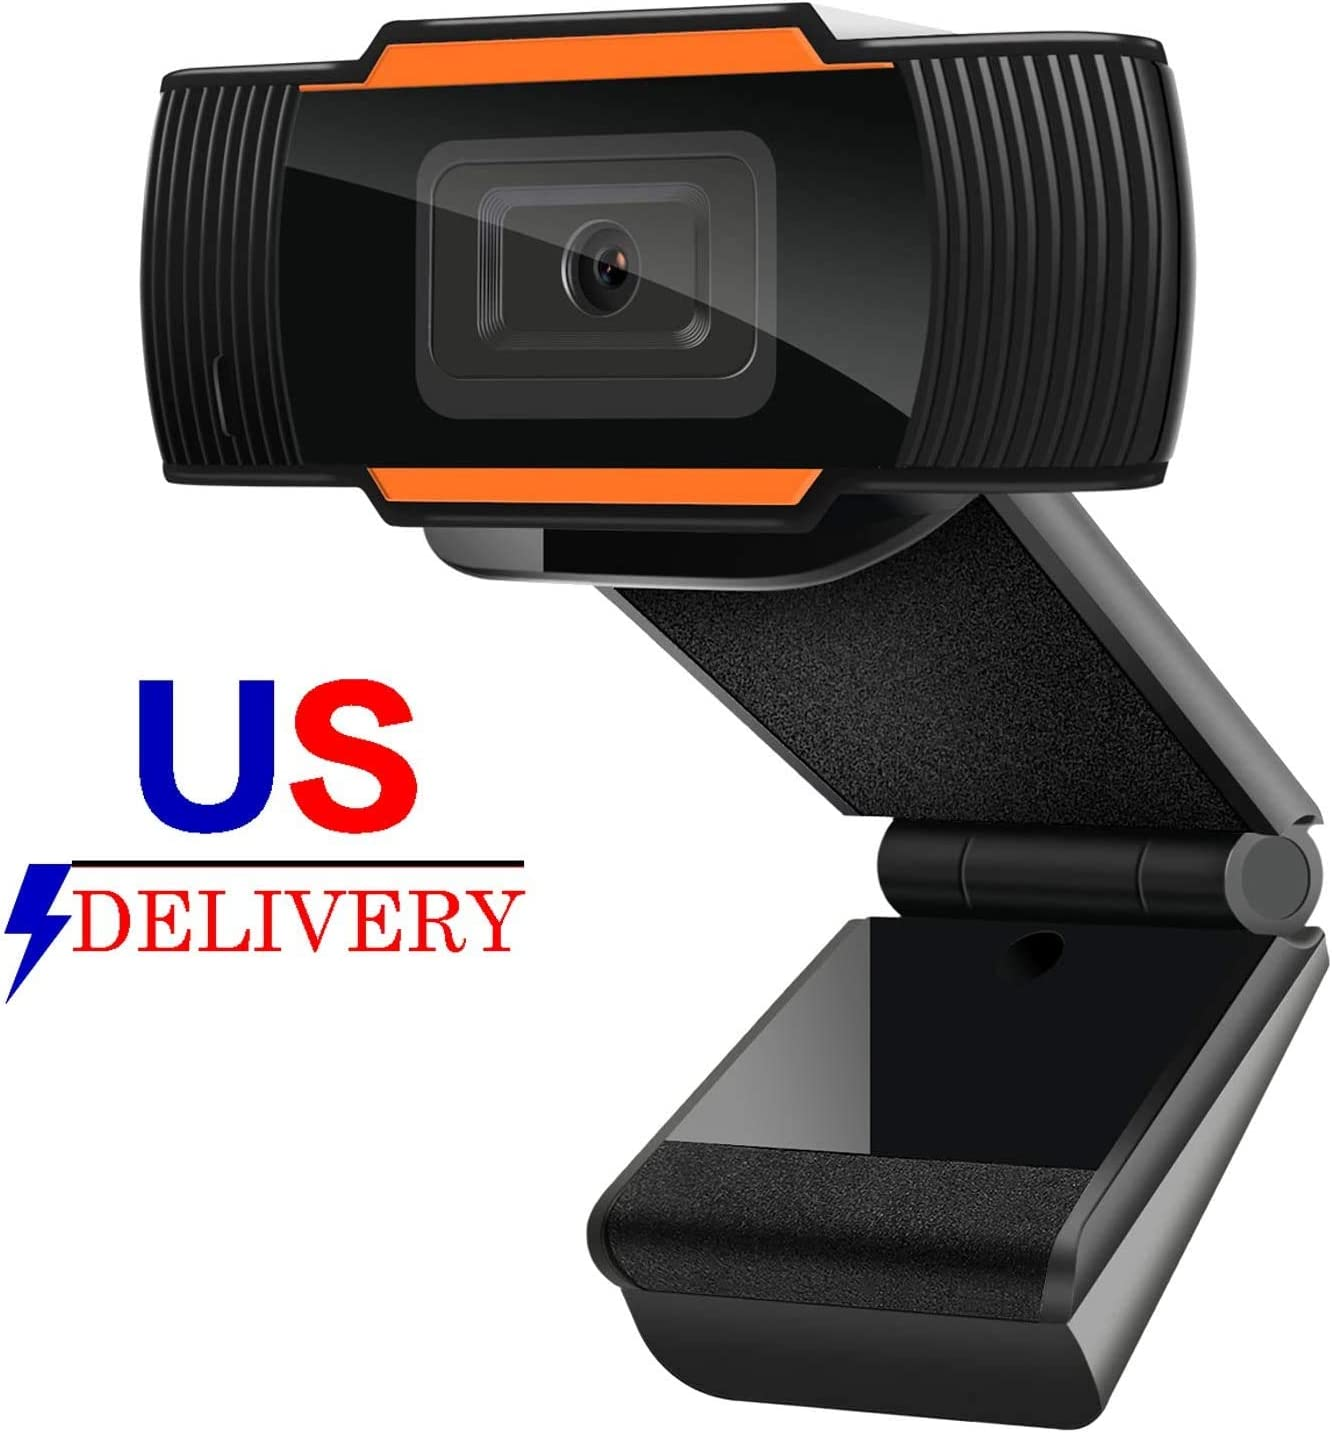 Webcam Auto Focus 1080P Full HD Widescreen Web Camera with Microphone USB Computer Camera for PC Laptop Desktop Mac Video Calling Recording Streaming Video Conference Online Teaching Business Gaming